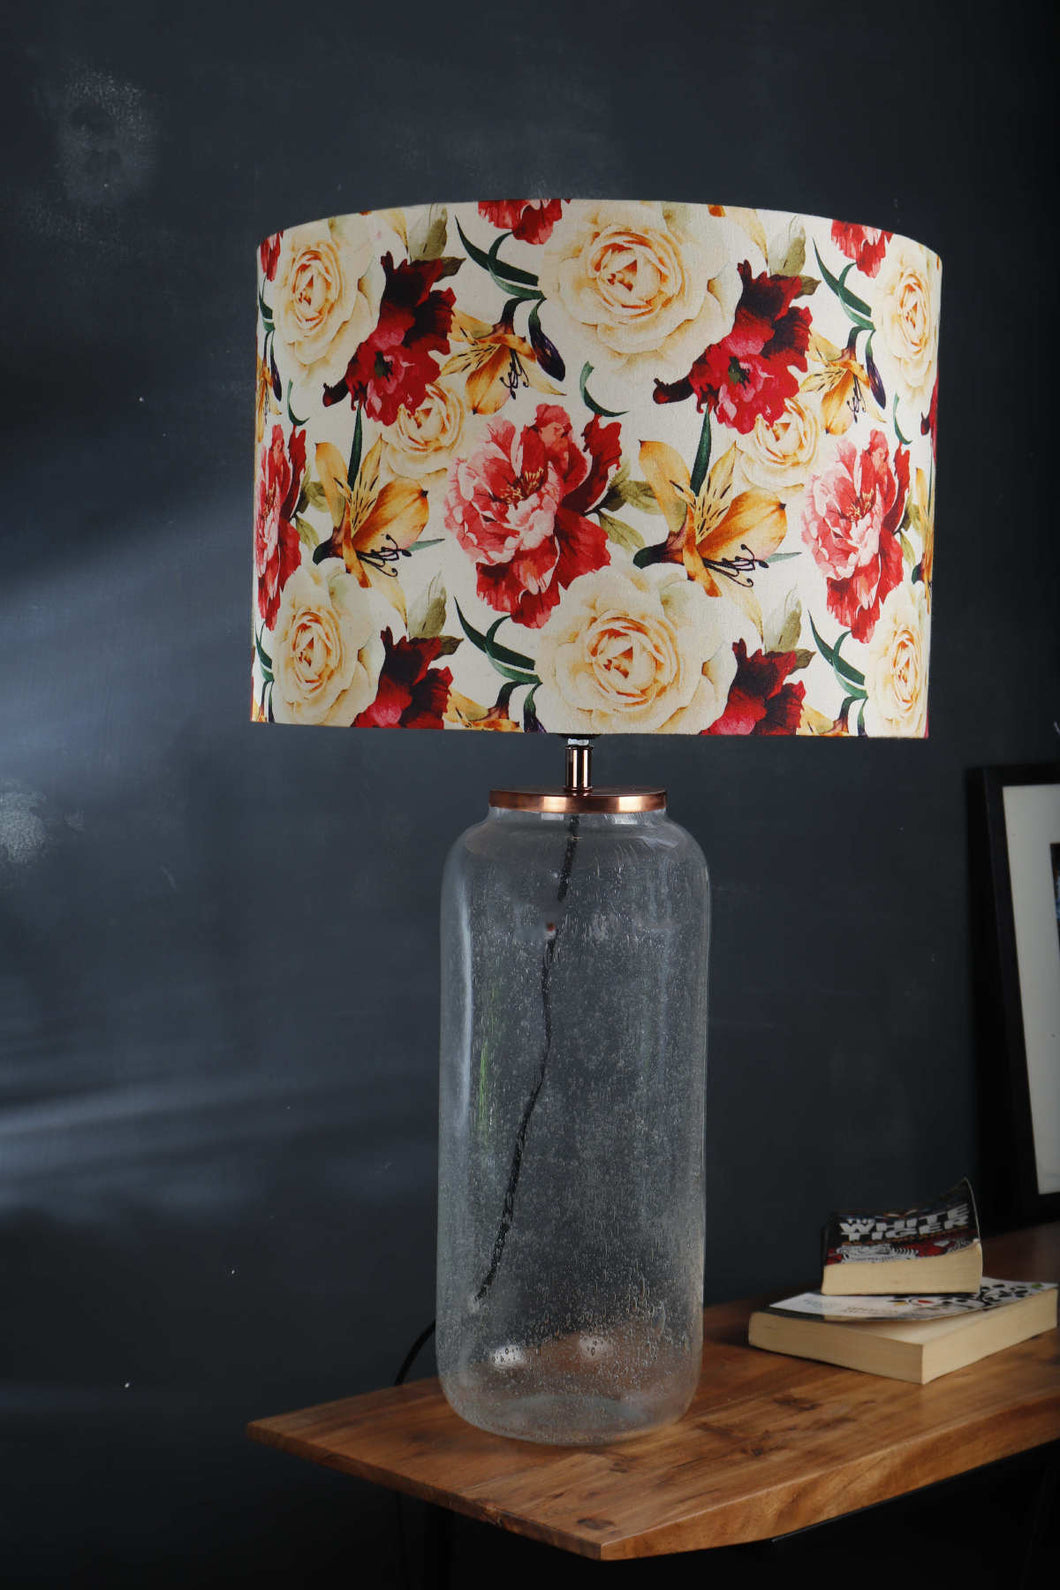 Fizz Jar Table Lamp with Flower Printed Lampshade